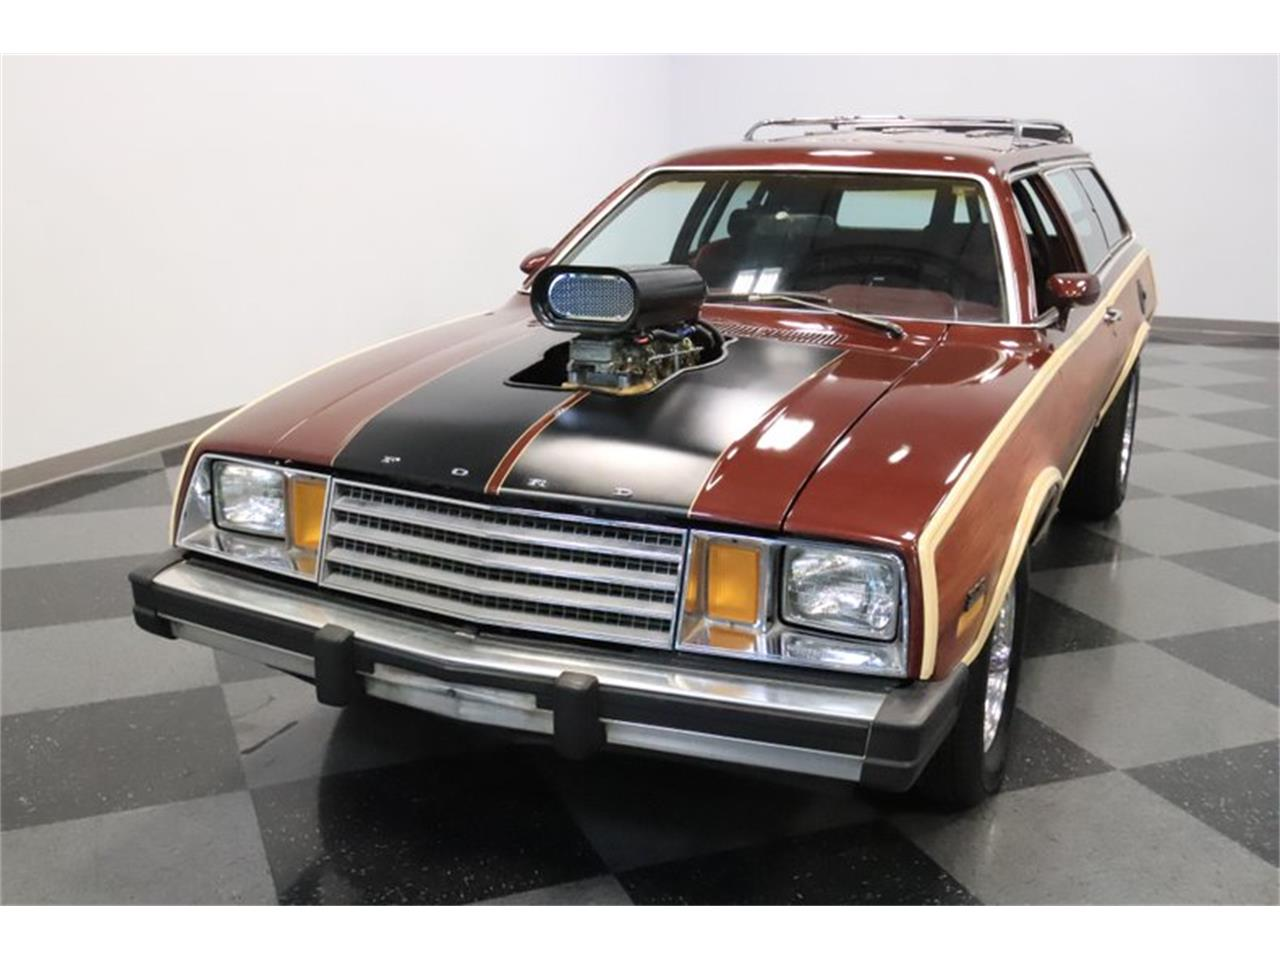 Large Picture of '80 Ford Pinto located in Mesa Arizona Offered by Streetside Classics - Phoenix - QZK7